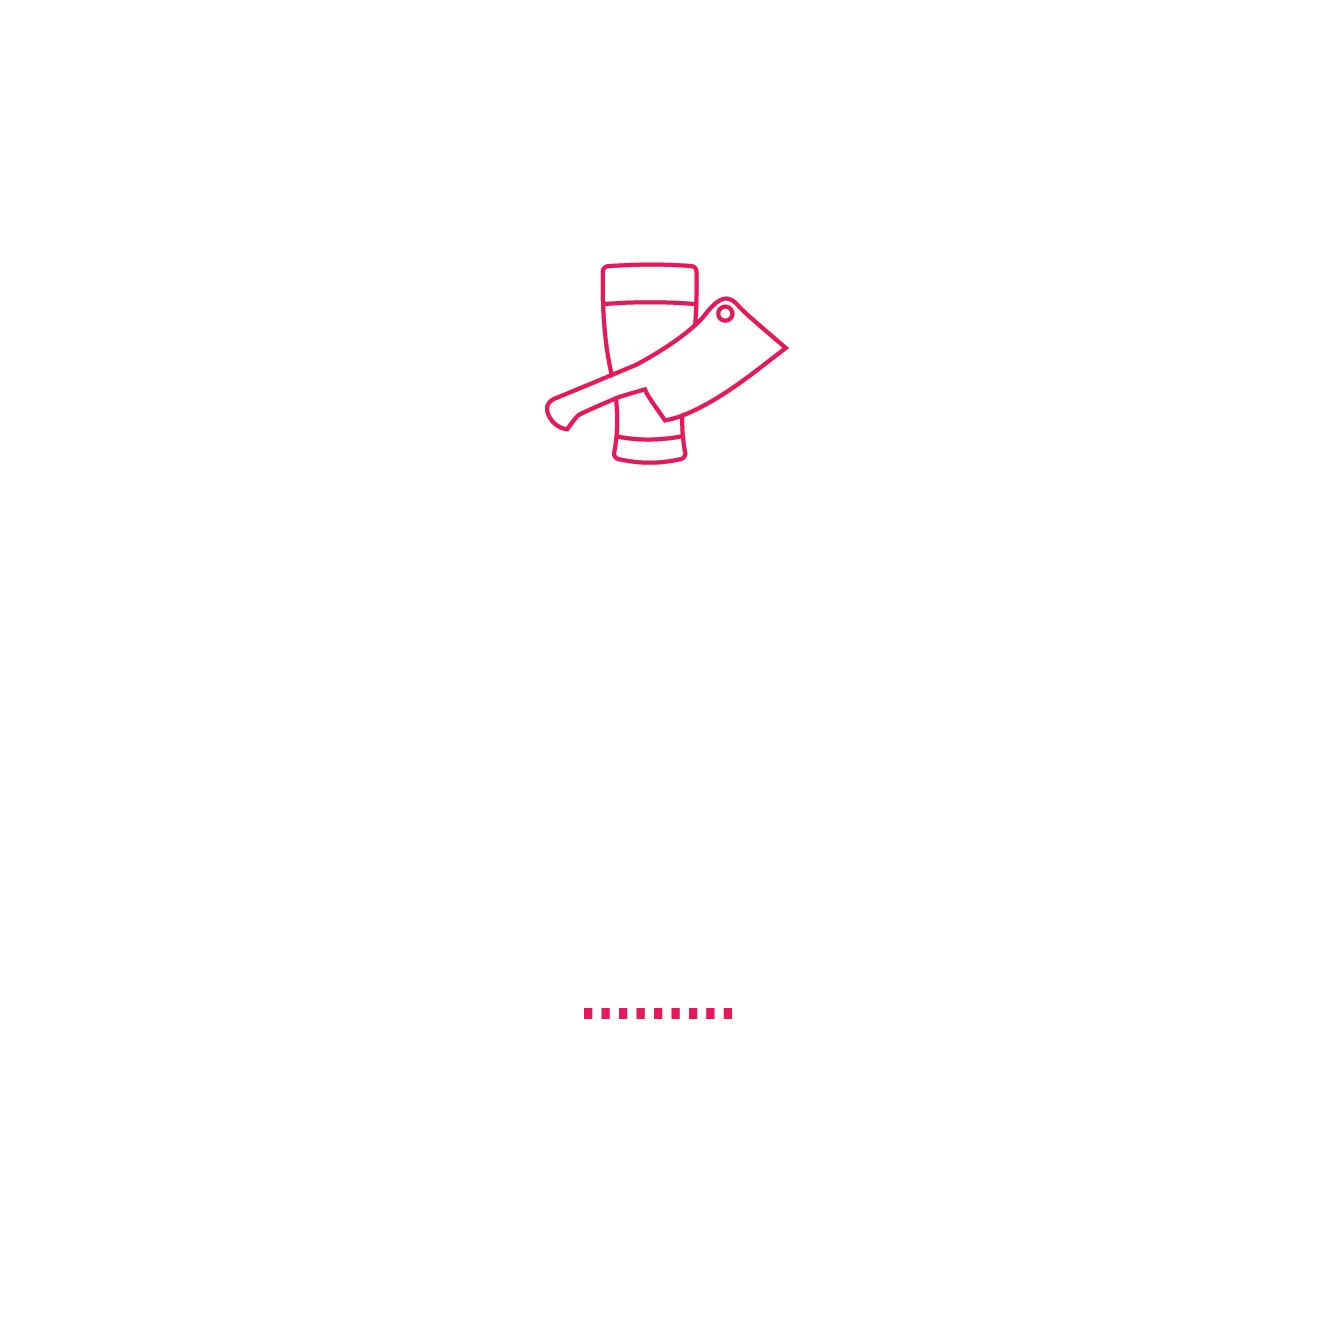 Logo Meating - Bar & Grill